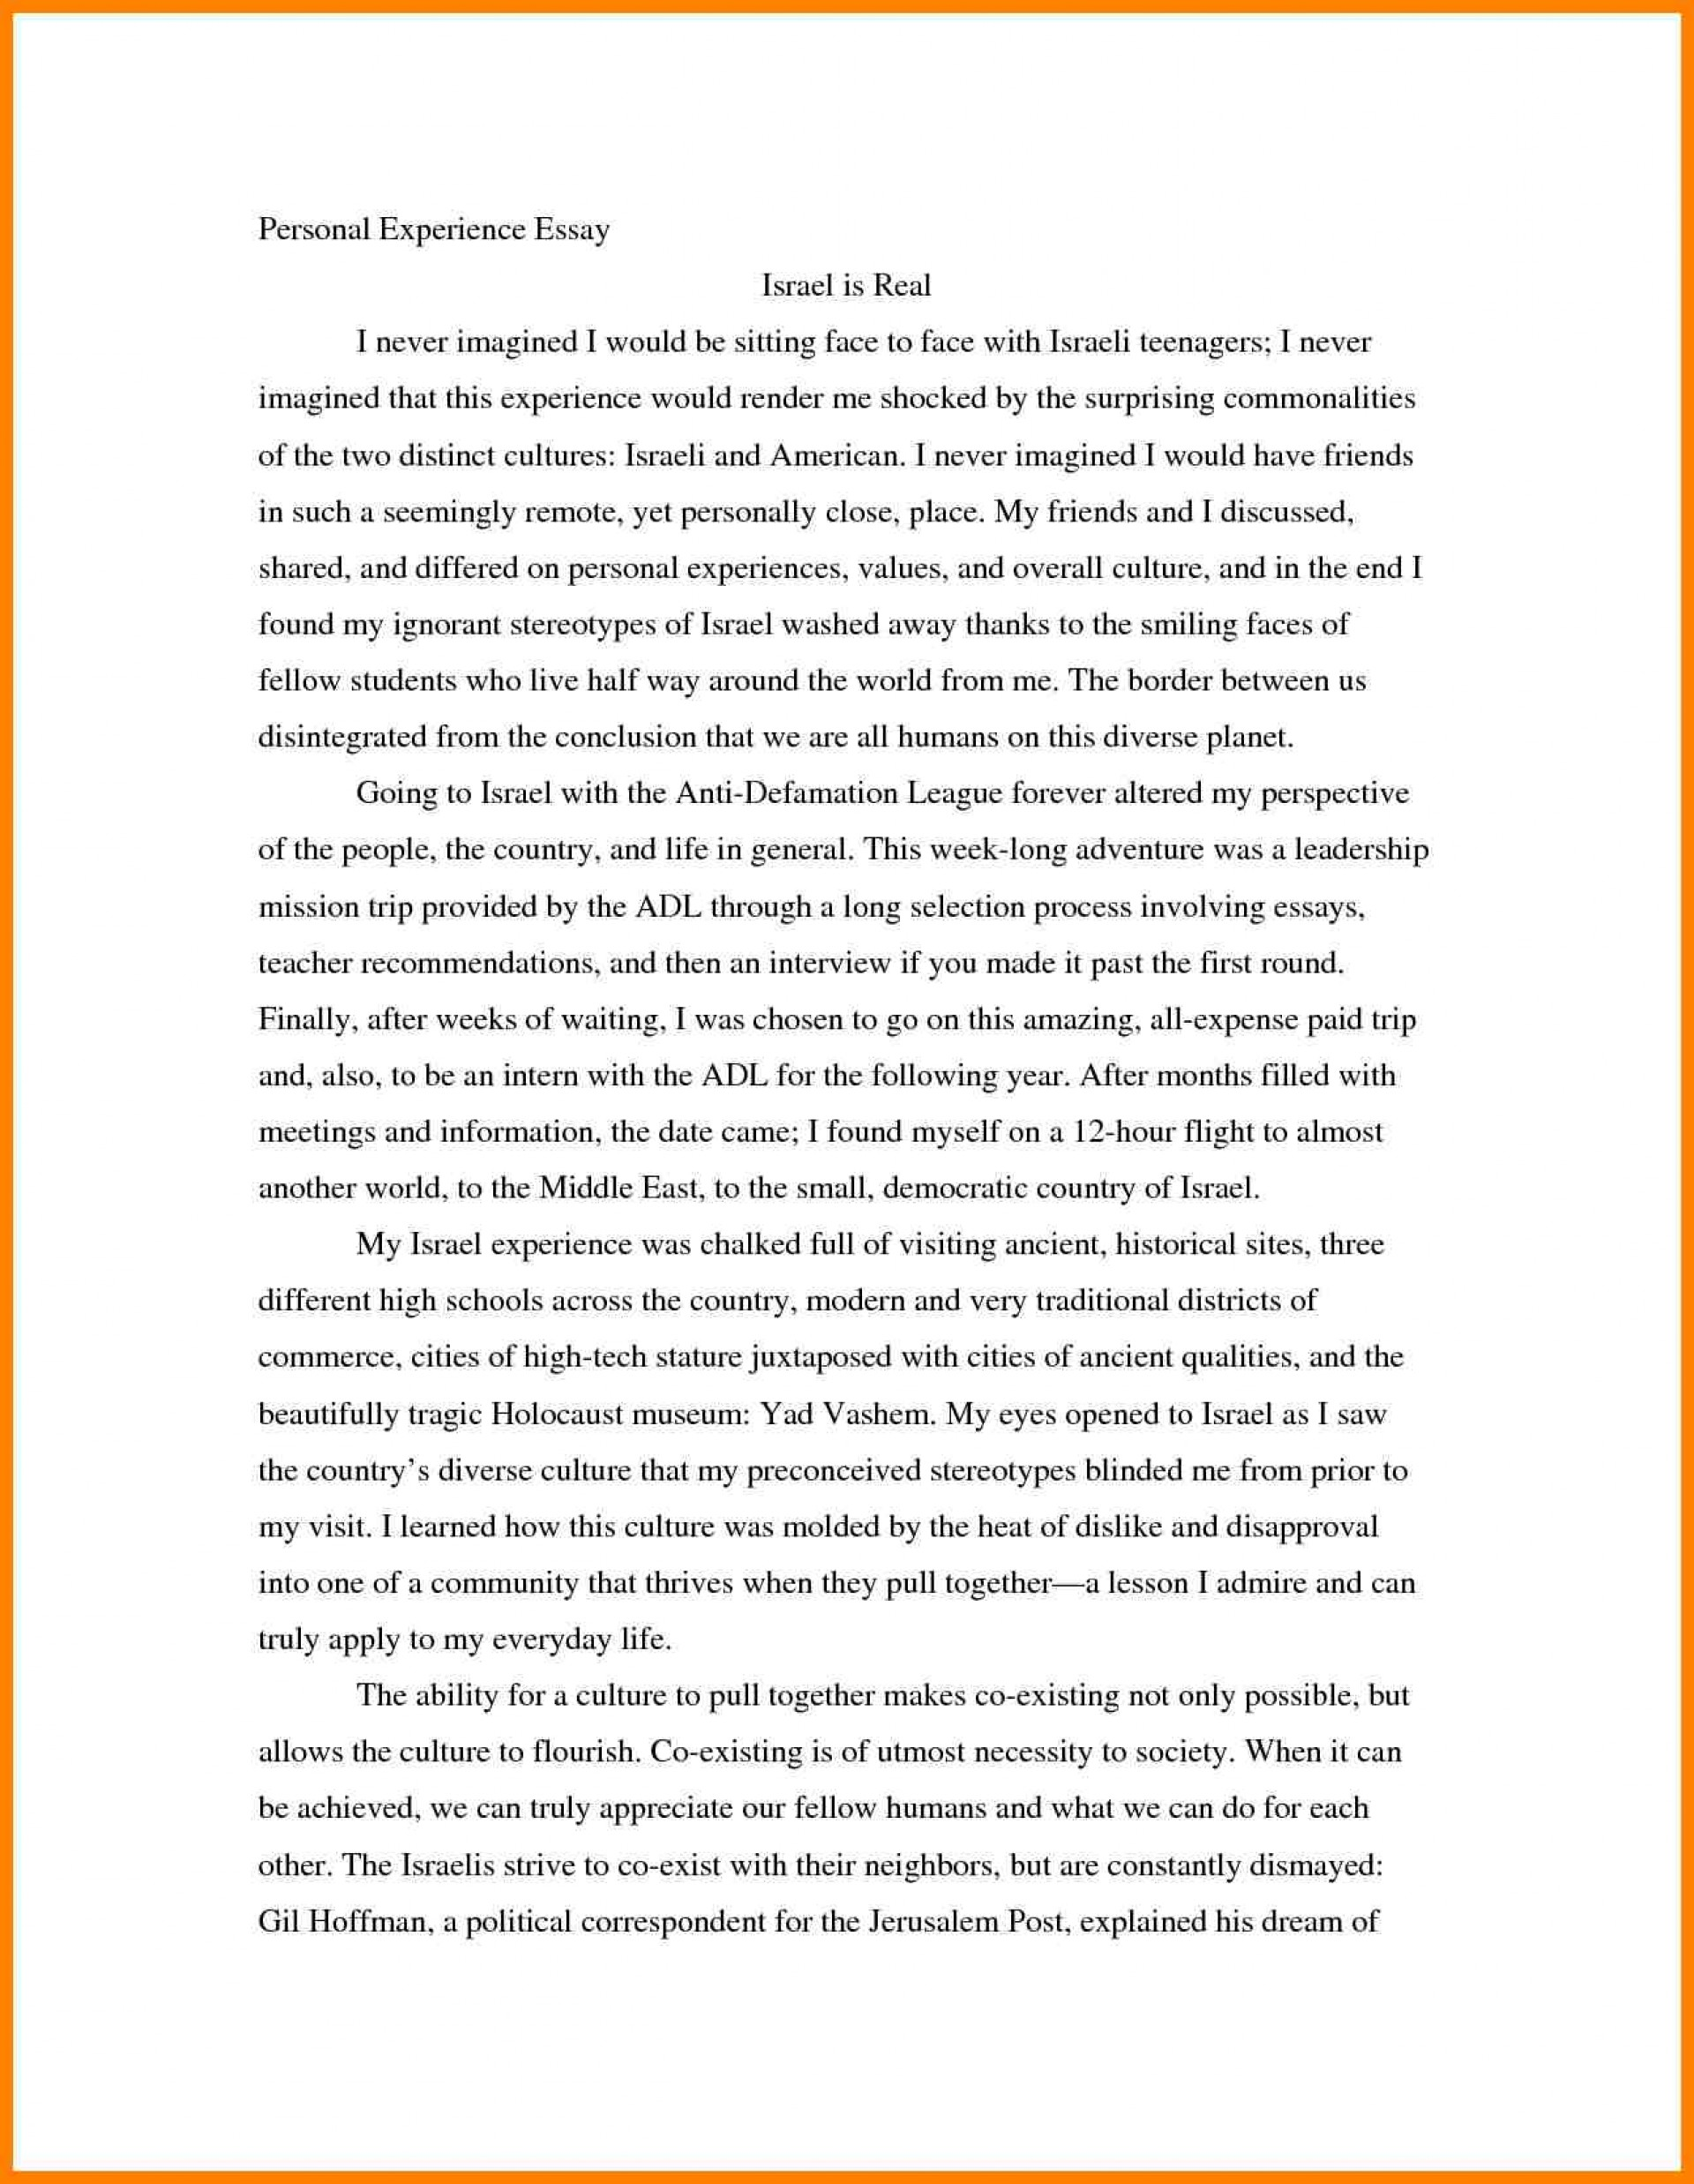 001 Essaye Personal Experience Bunch Ideas Of Writing Sample College Essays Charminges Fearsome Essay Narrative Example Paper Topics Outline 1920